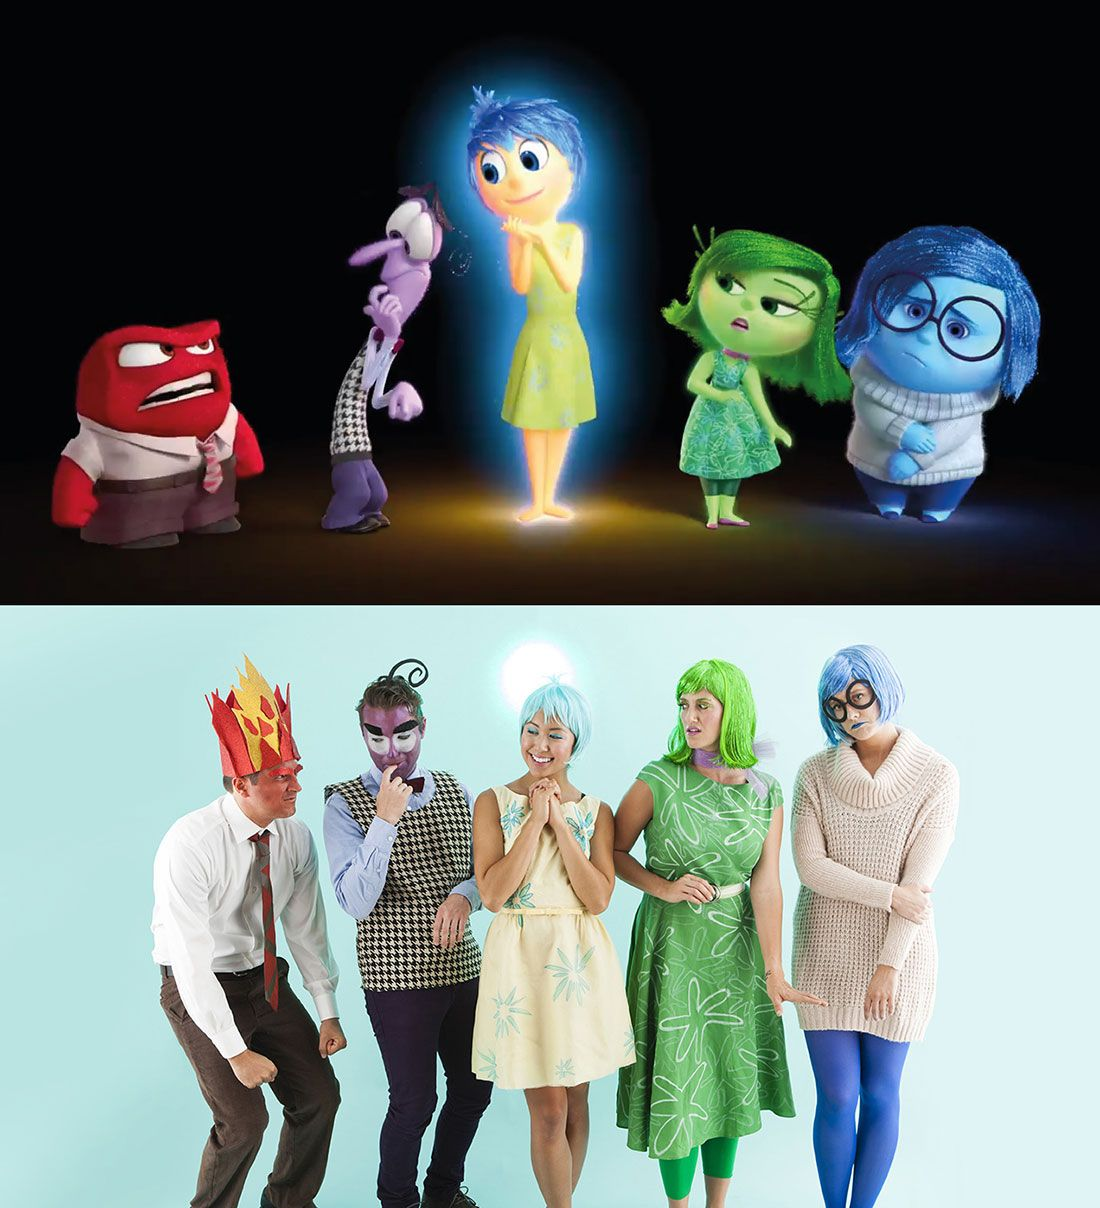 How To Make Inside Out Characters For An Epic Group Halloween Costume Cute Halloween Costumes Halloween Costumes Friends Cute Group Halloween Costumes